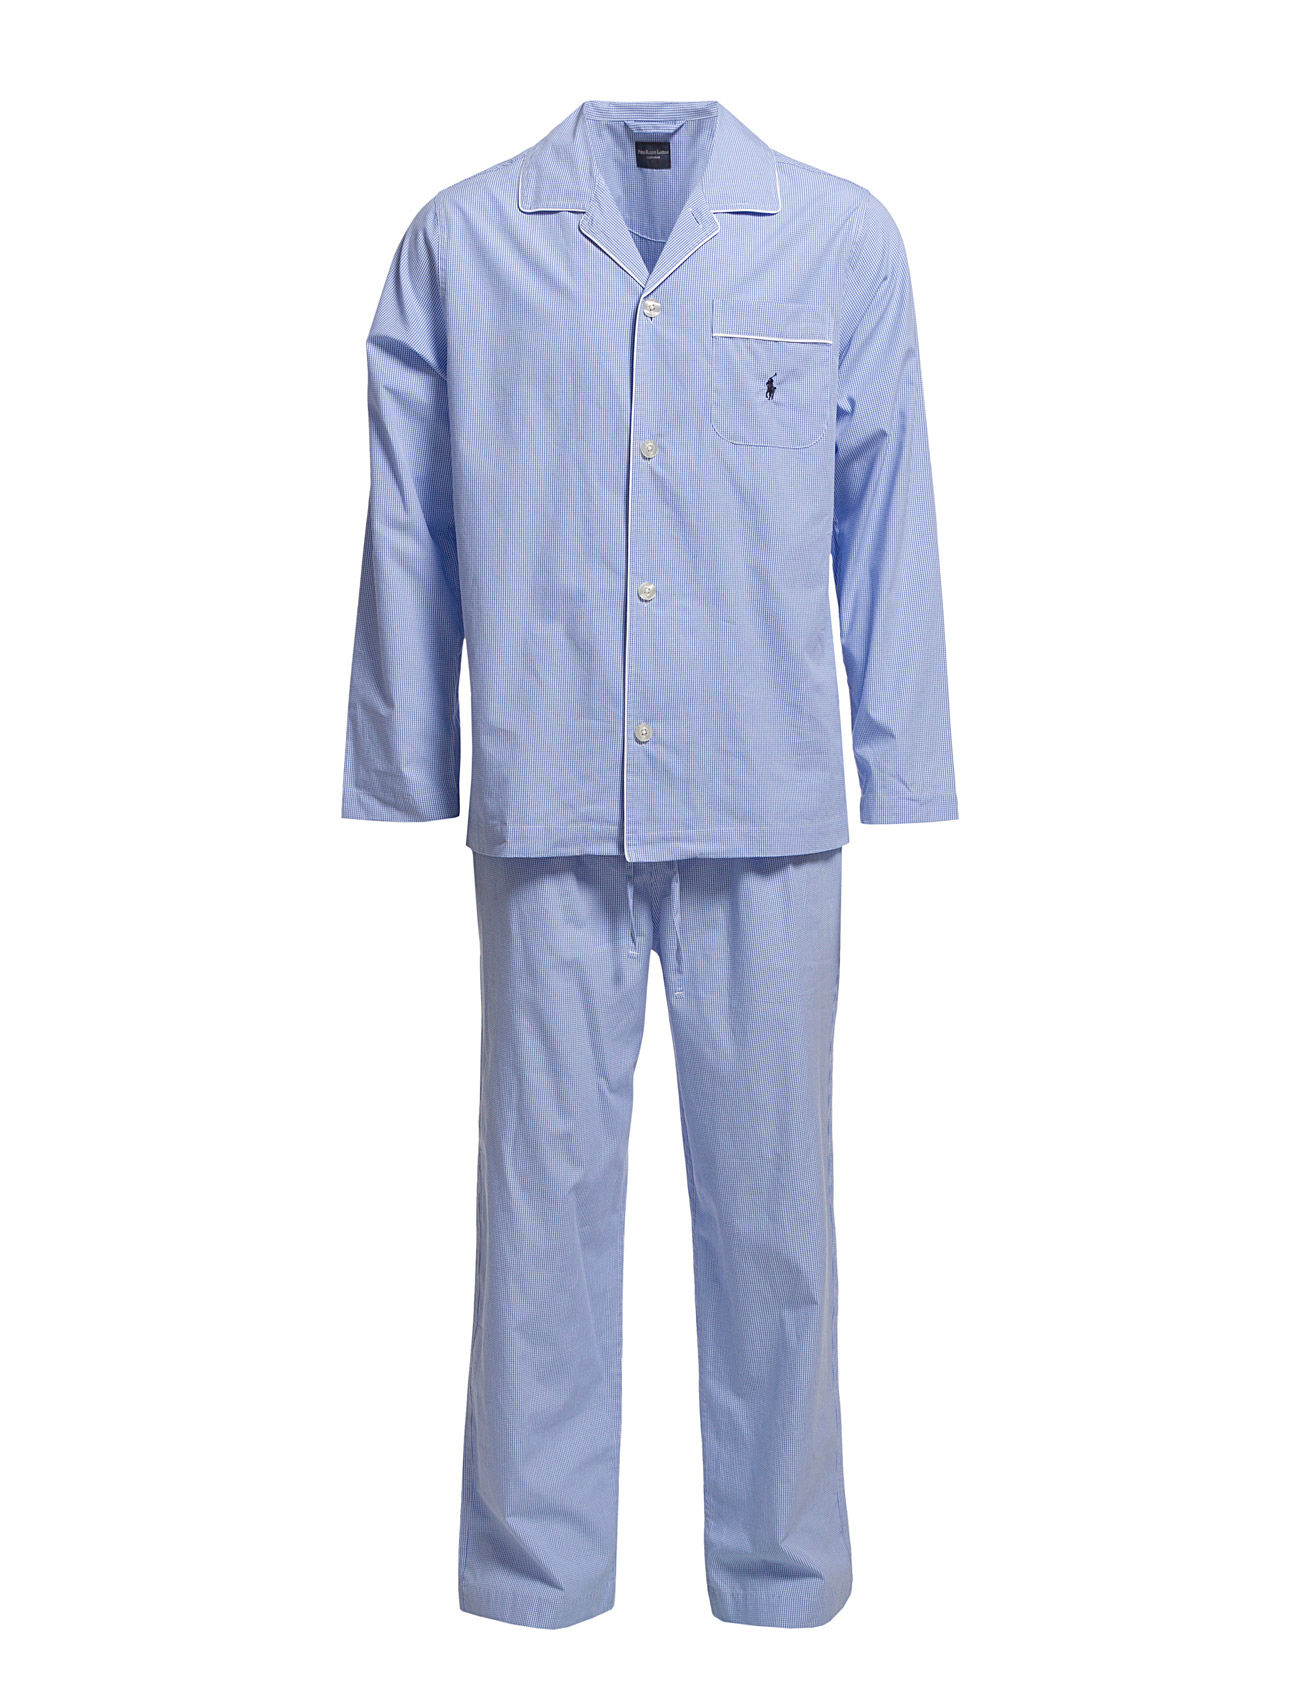 Polo Ralph Lauren Underwear PYJAMA SET LONG - LT BLUE MINI GI